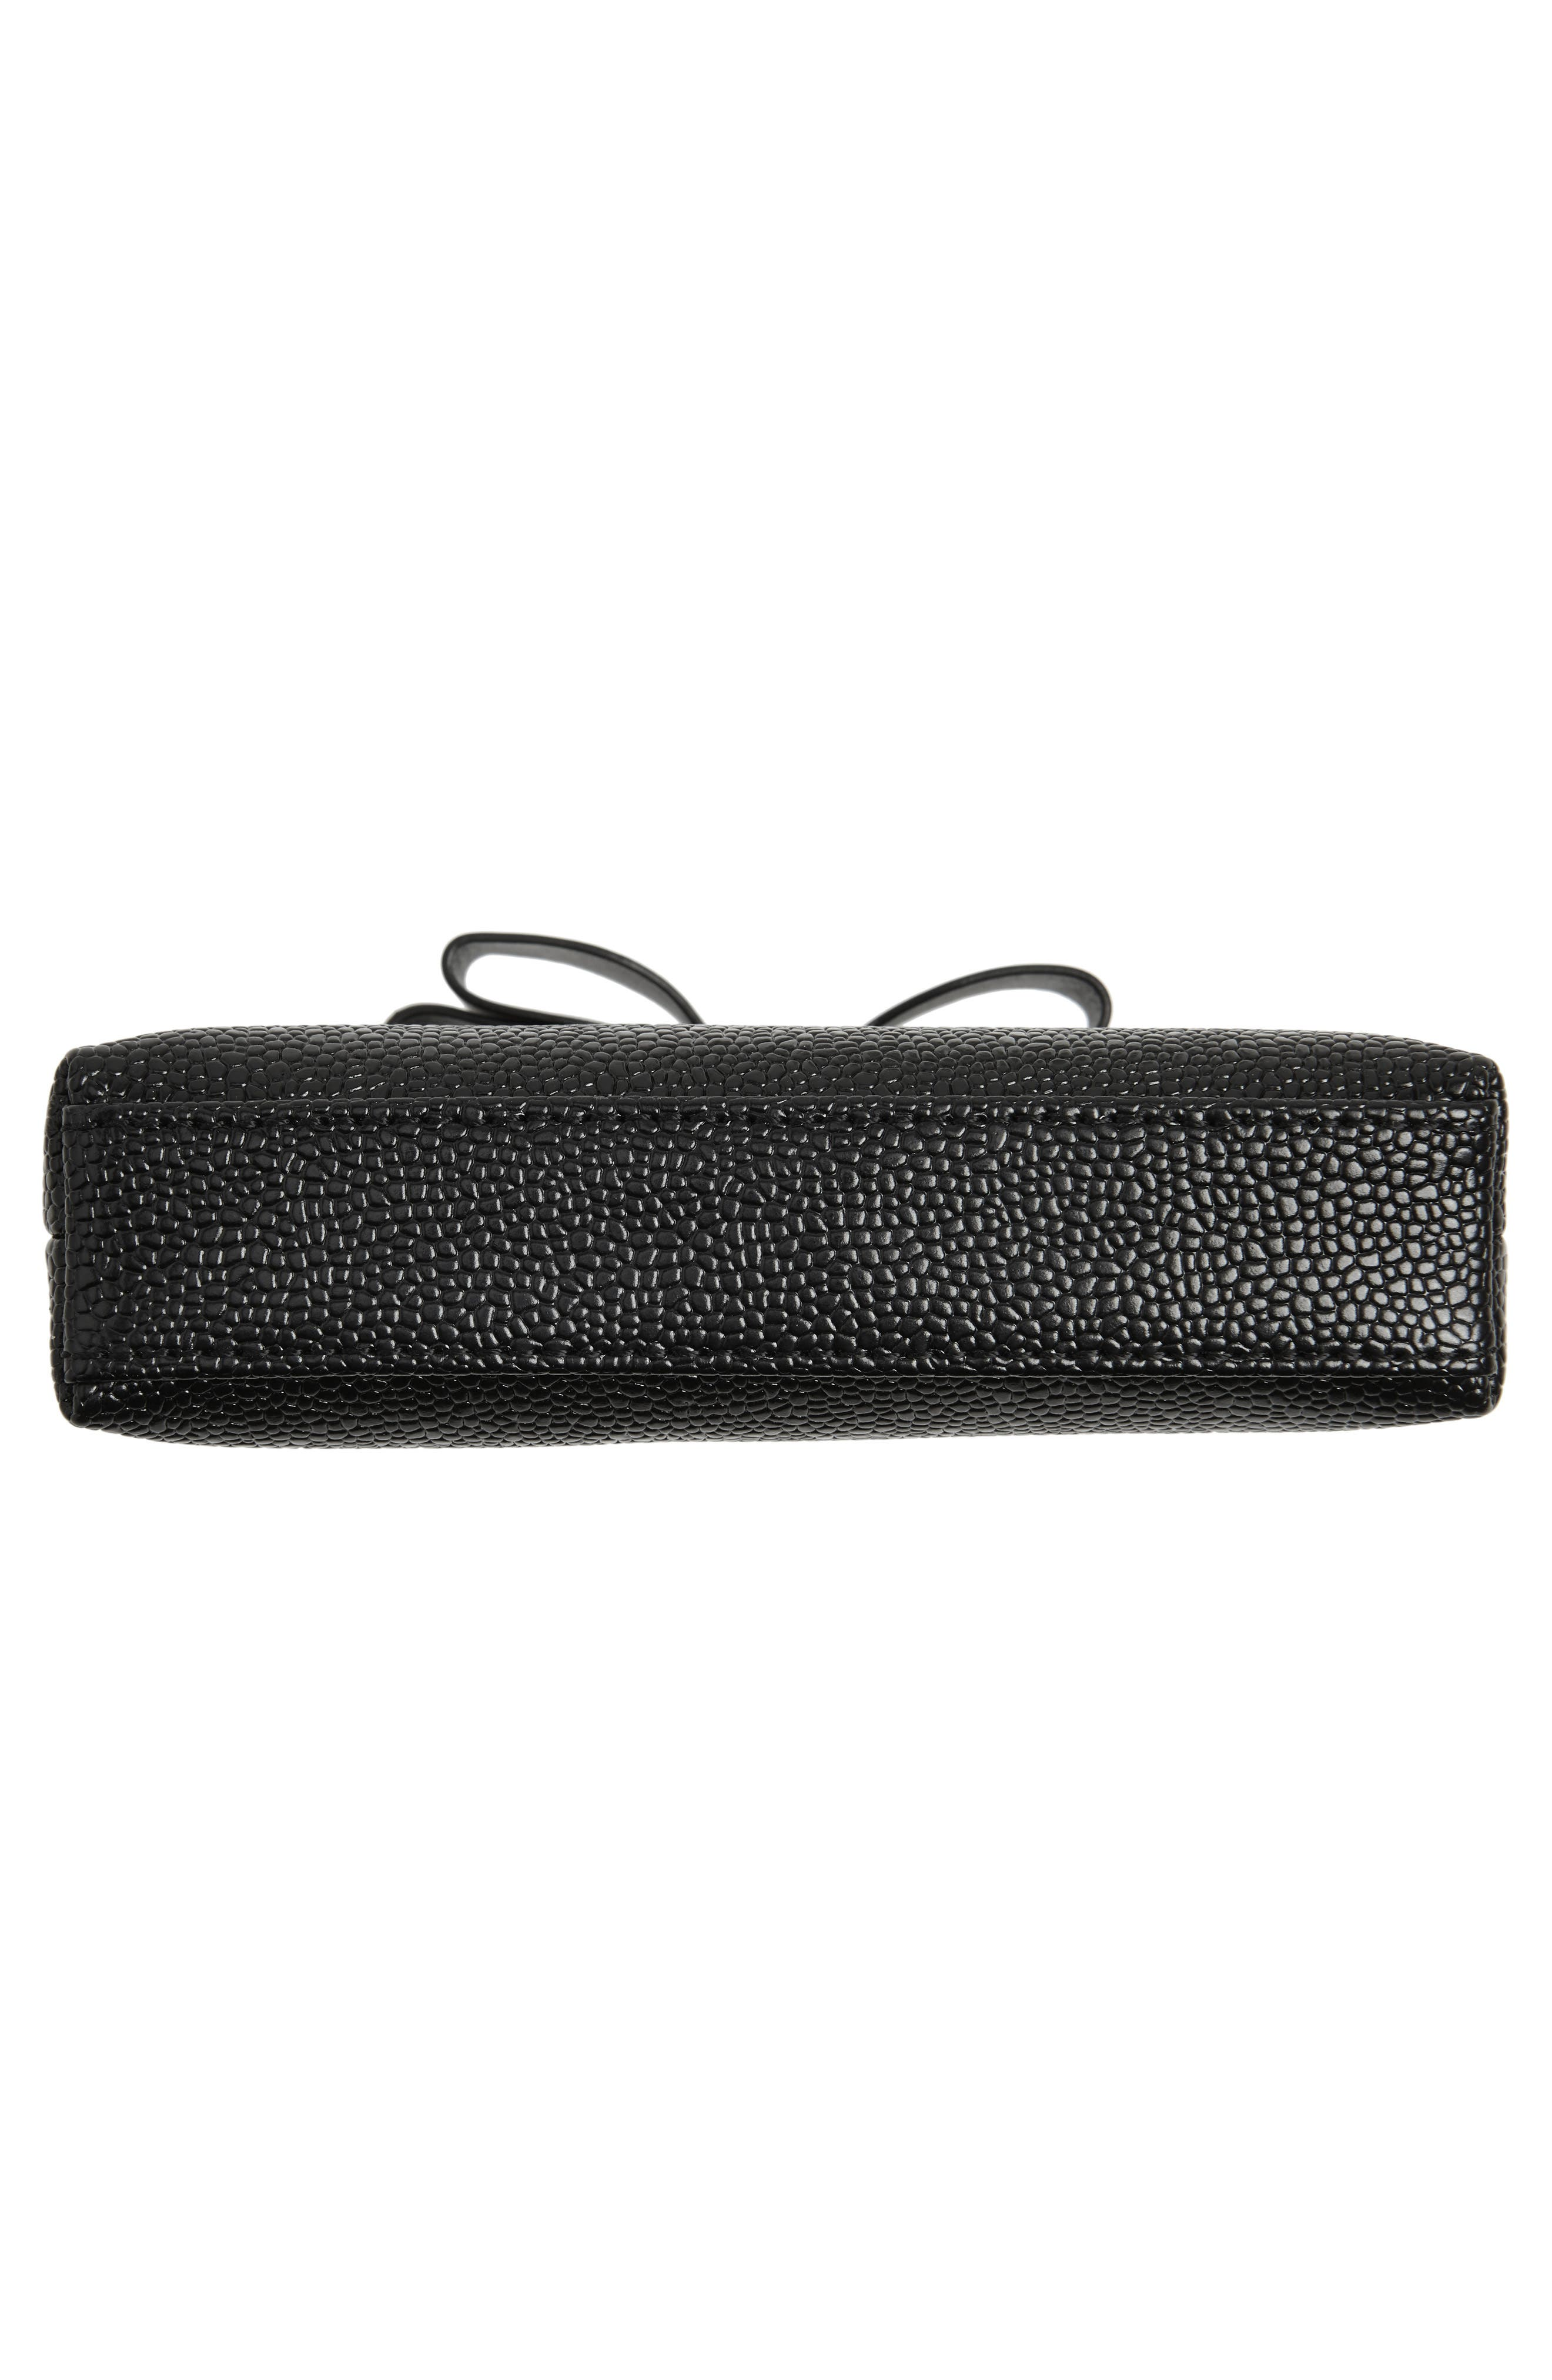 Emmahh Bow Small Leather Cosmetics Case,                             Alternate thumbnail 5, color,                             BLACK